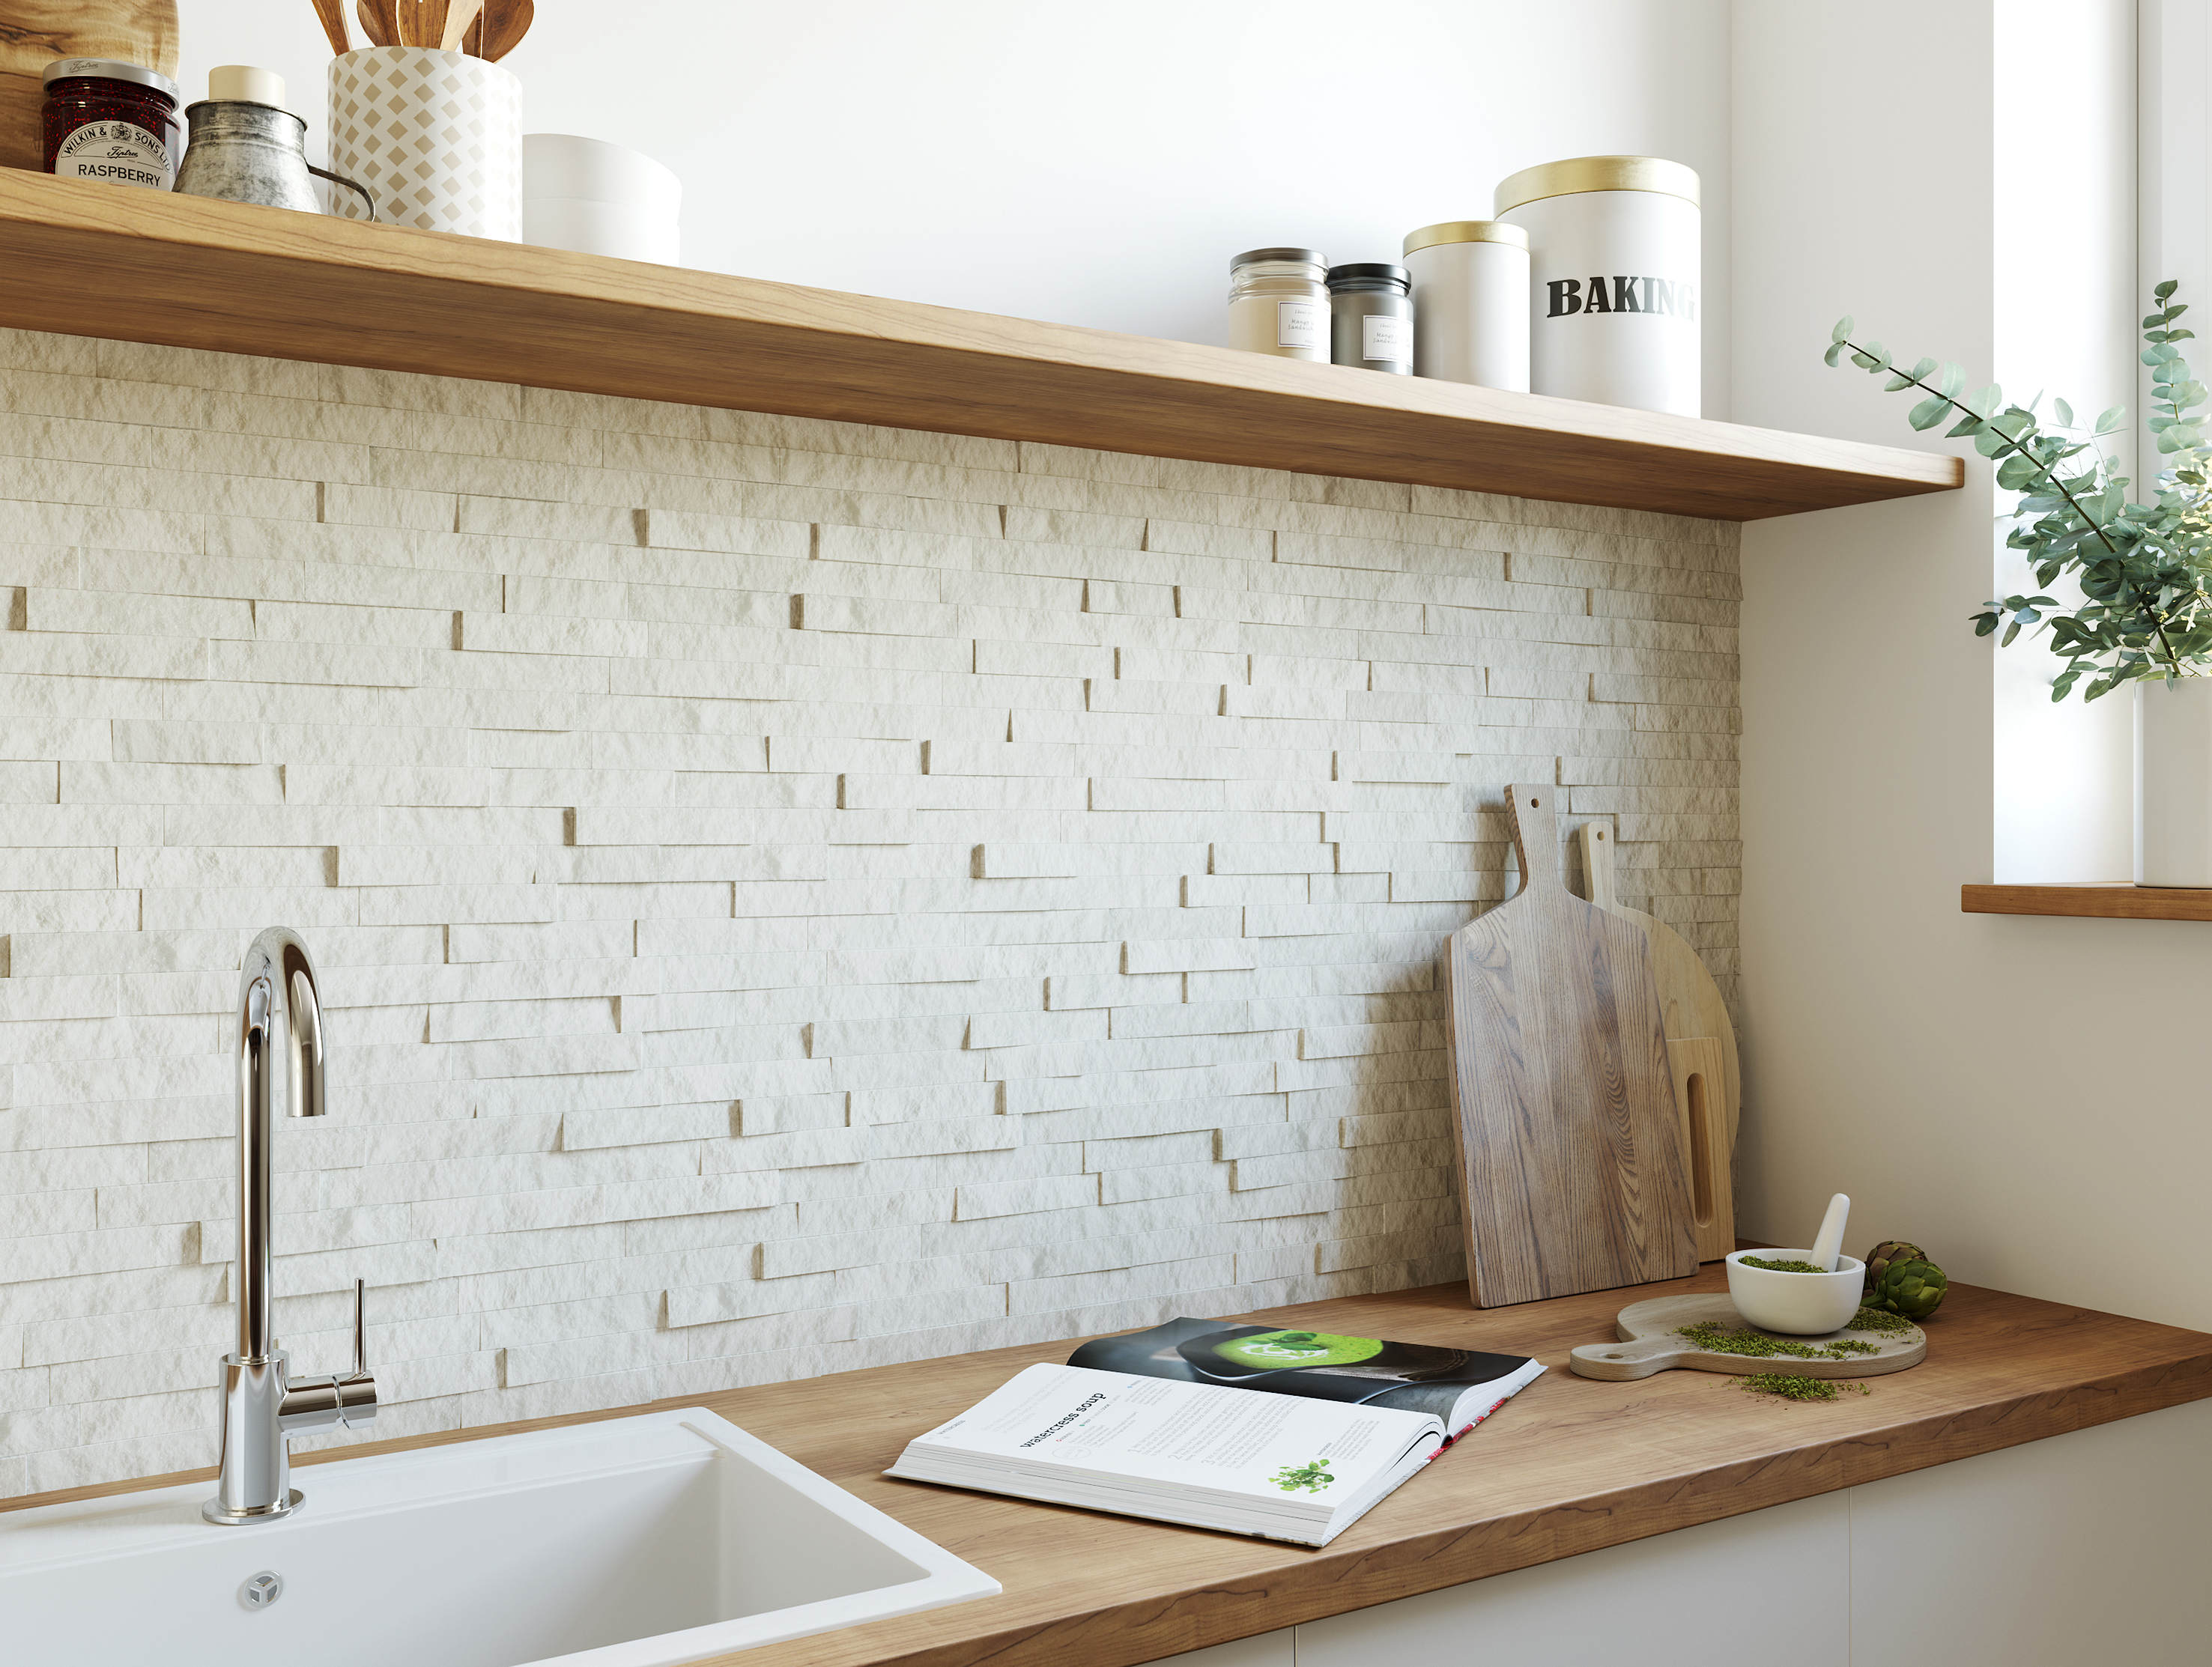 How To Cut Tiles With Or Without A, How To Cut Bathroom Tile